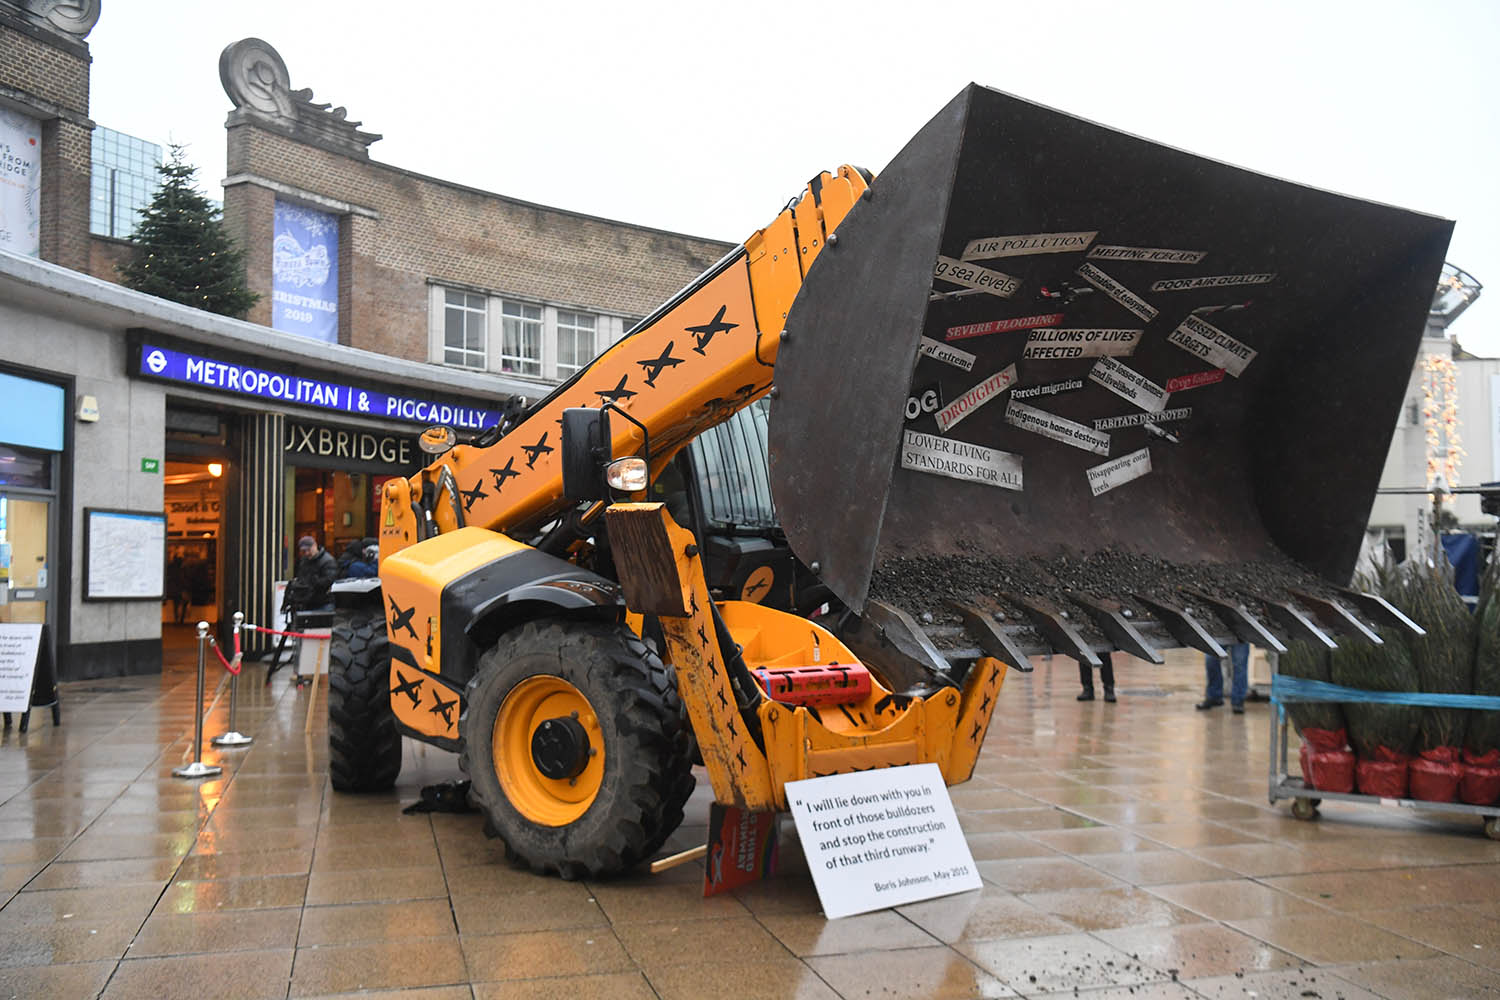 A bulldozer placed by Greenpeace protesters outside Uxbridge tube station in Johnson's constituency on Nov. 26. The display includes a placard with Johnson's quote pledging to stop the expansion of Heathrow airport.